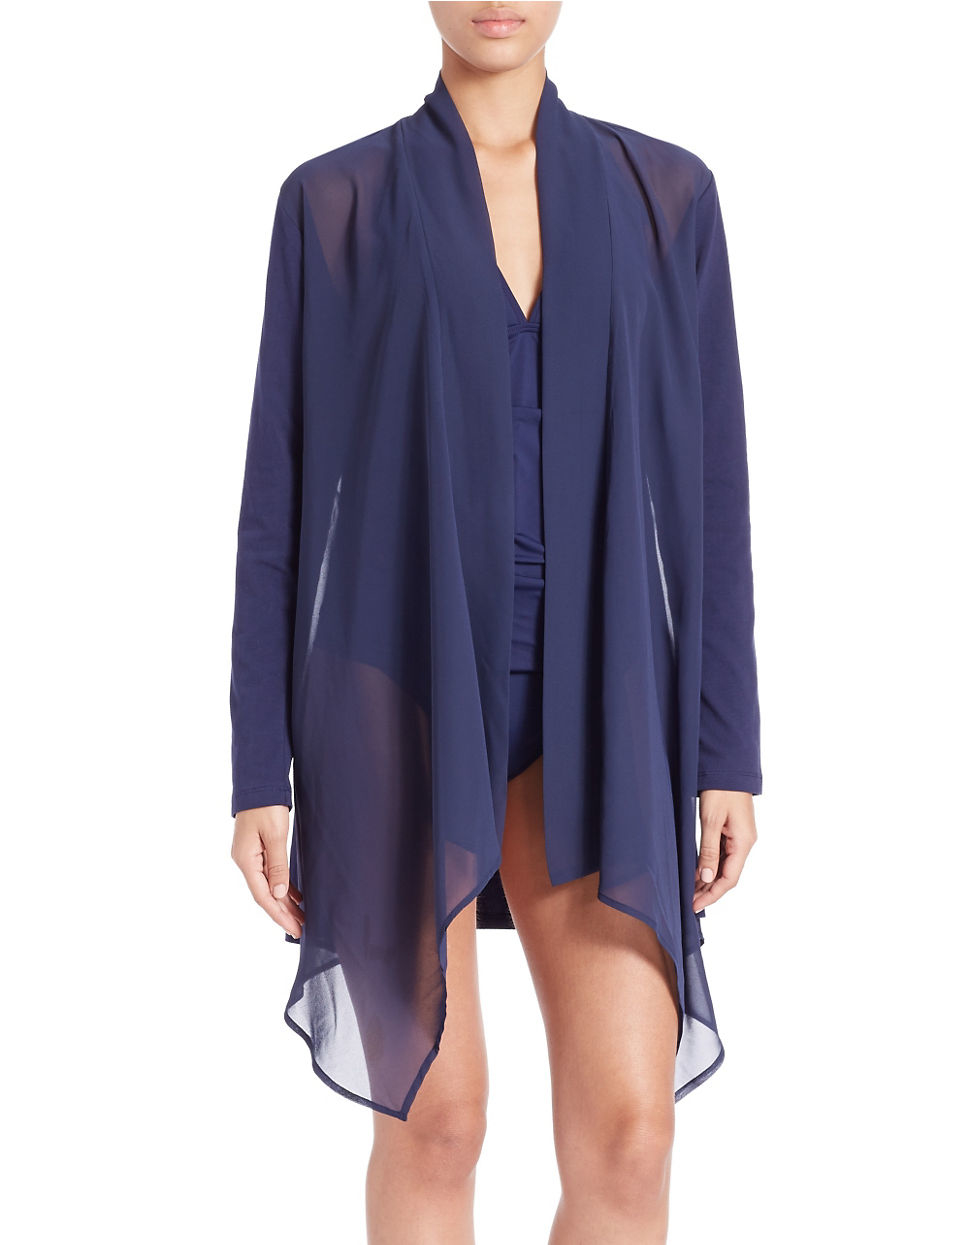 Tommy bahama Knit And Chiffon Cover-up in Blue | Lyst